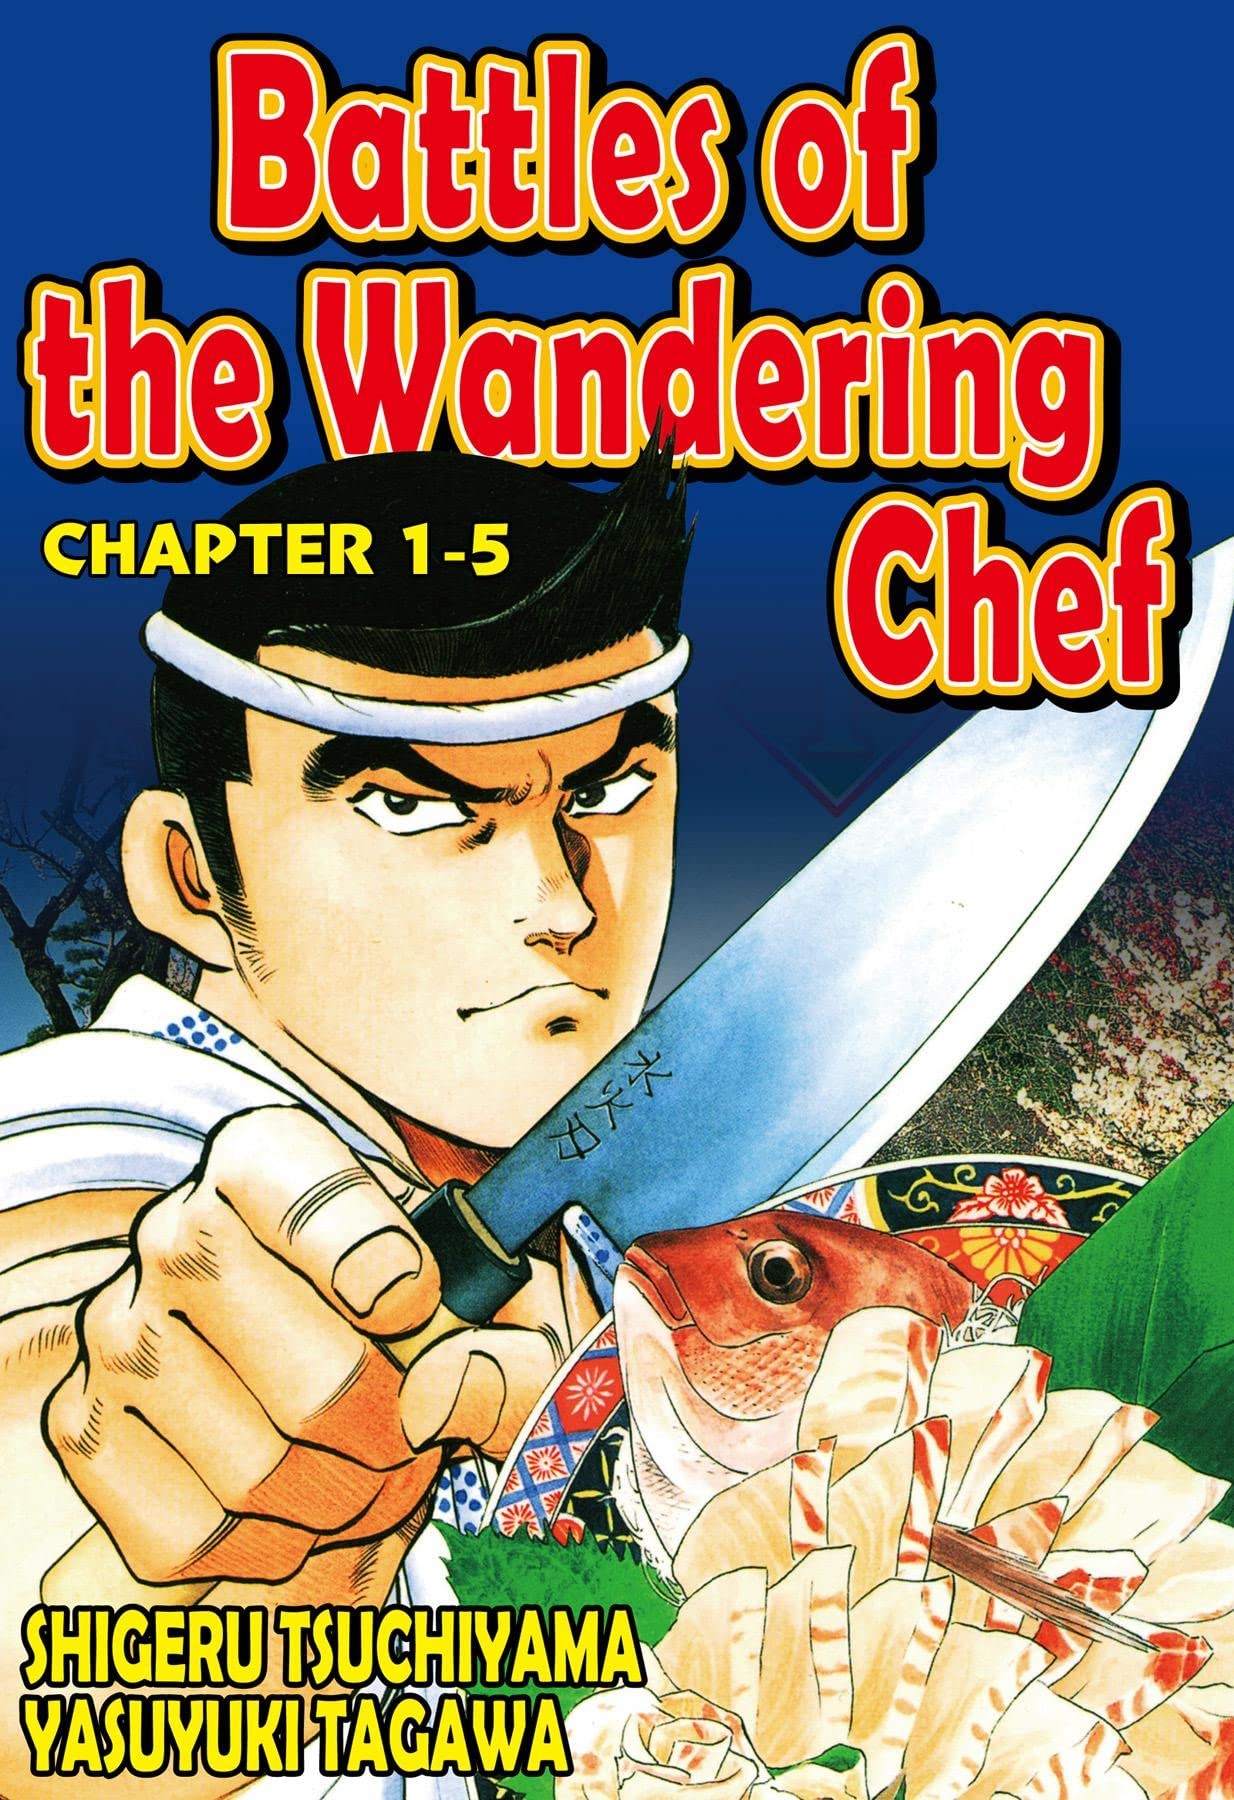 BATTLES OF THE WANDERING CHEF #5